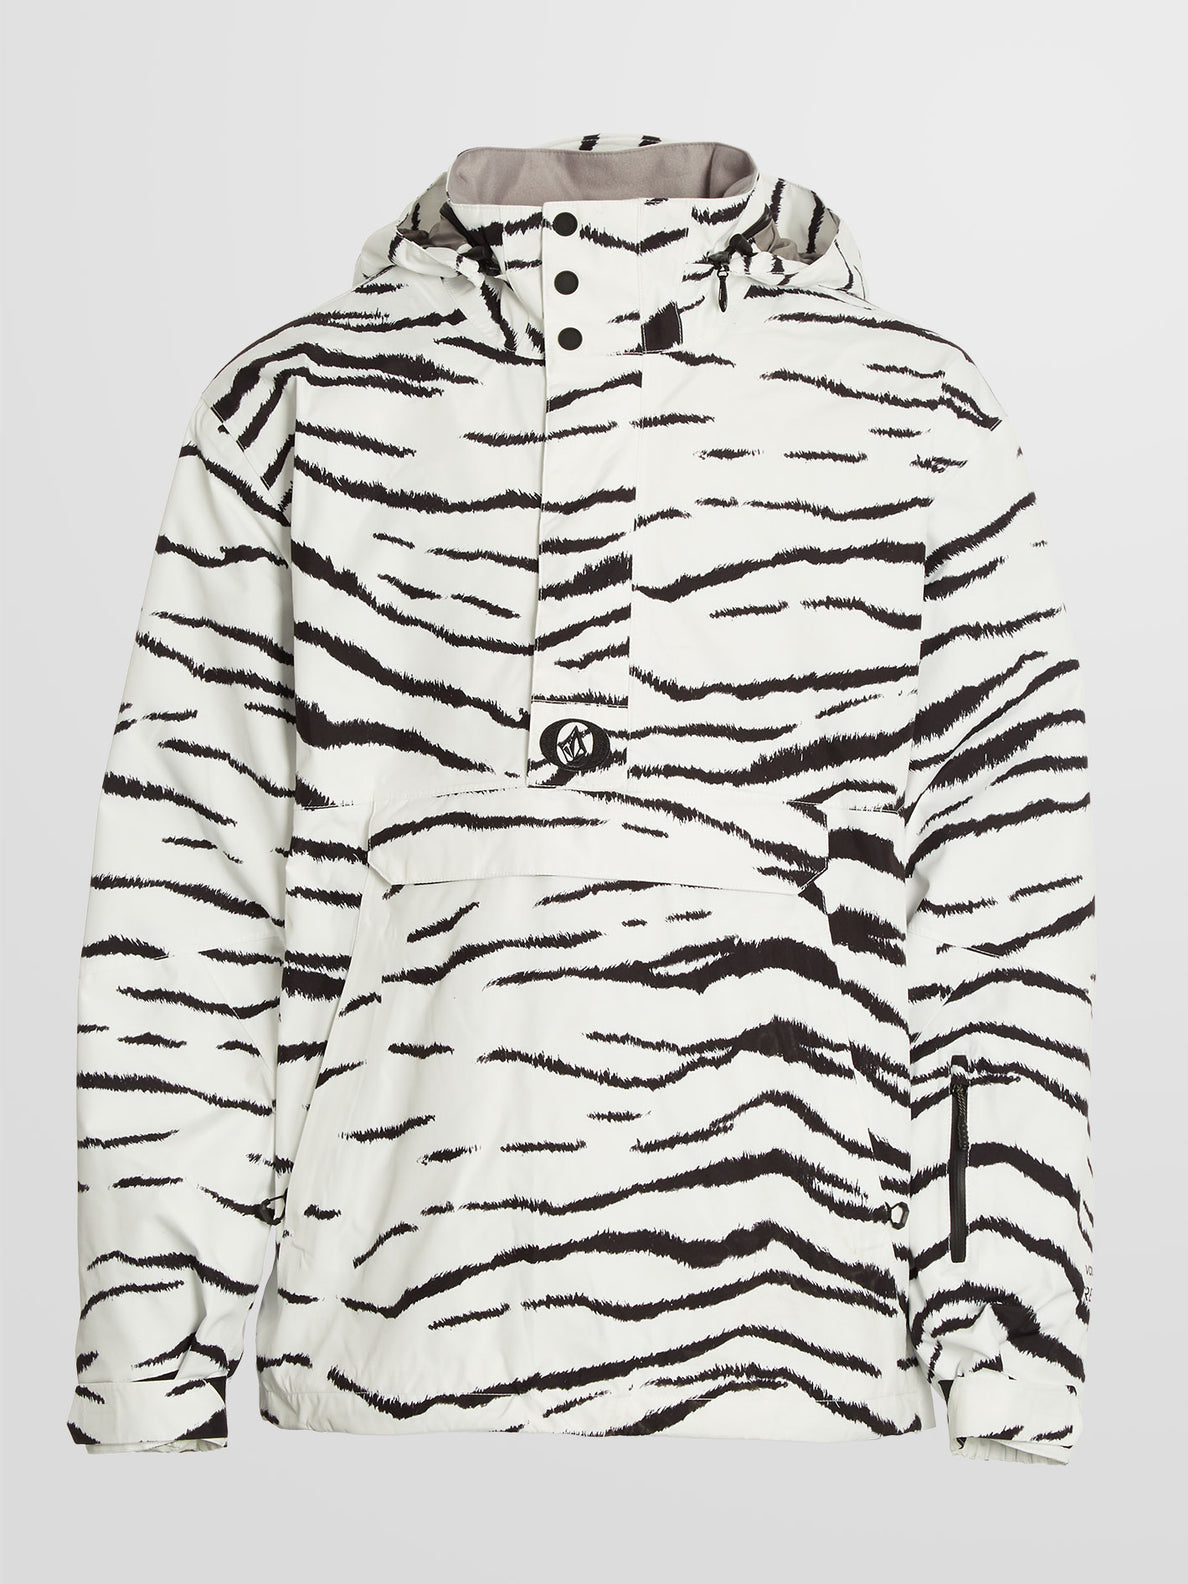 Melo GORE-TEX Jacket - White Tiger